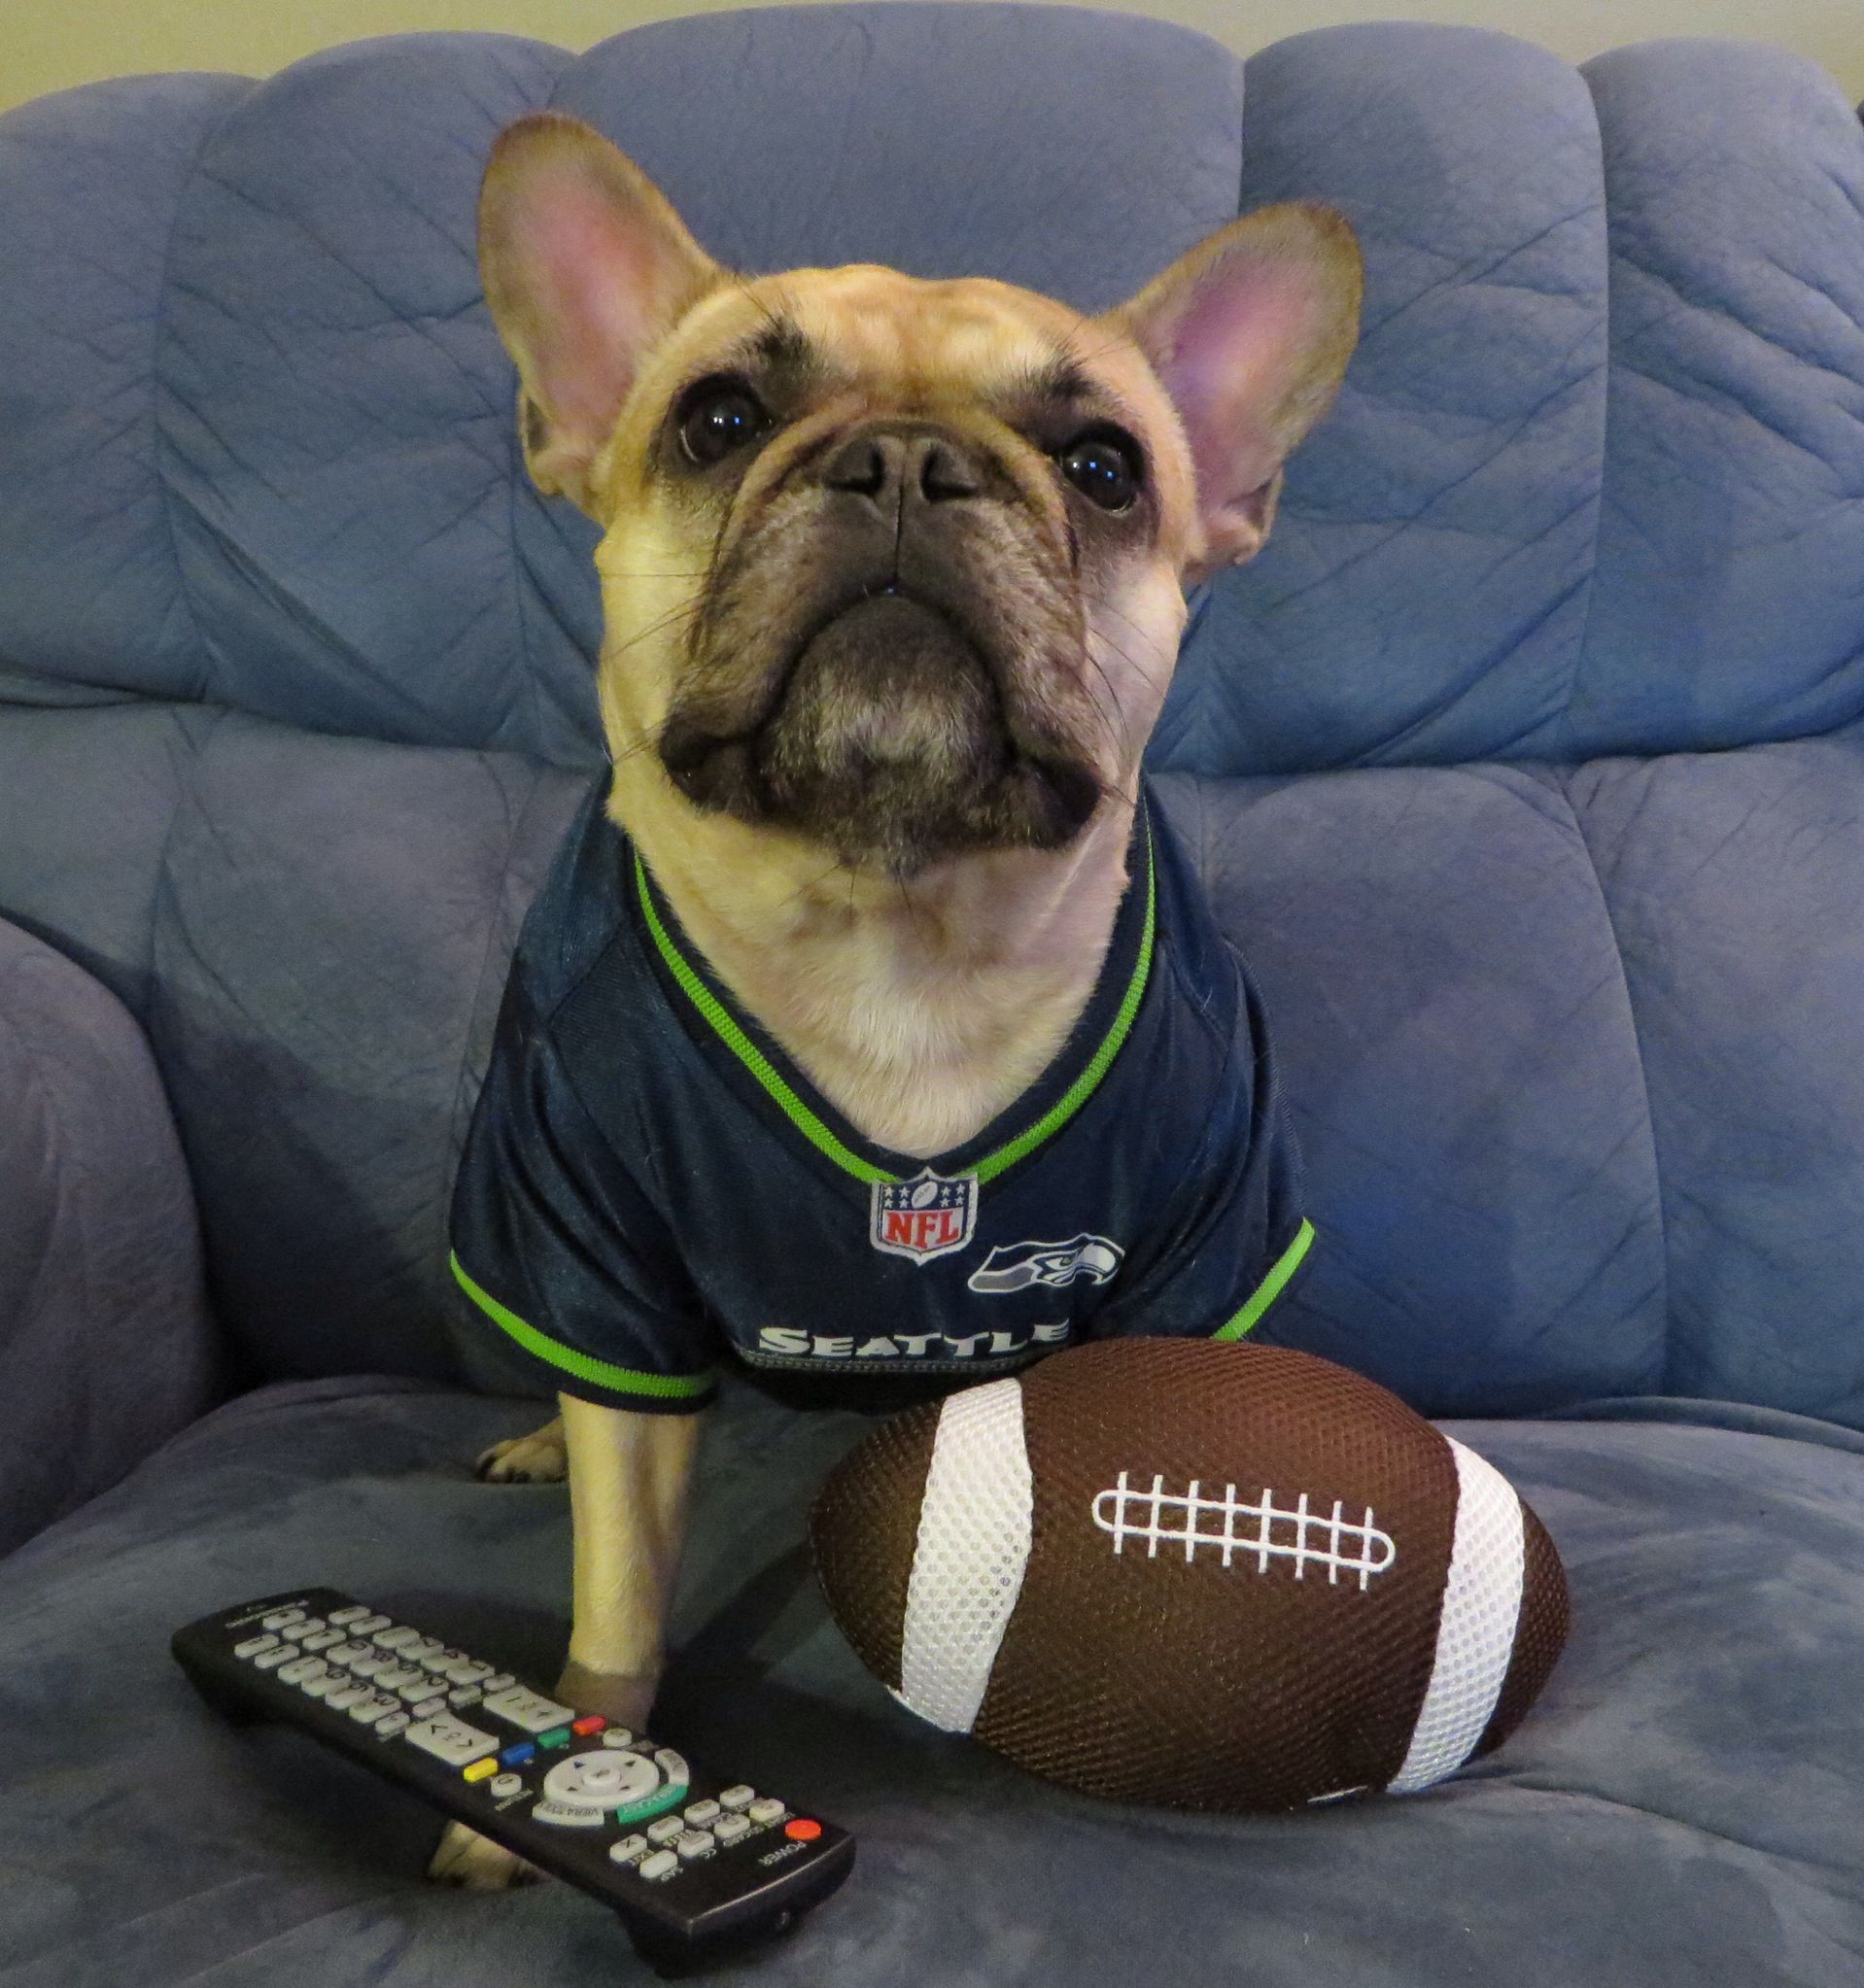 Roxy is the 12th Dog Seahawks Superbowl Champs Superbowl